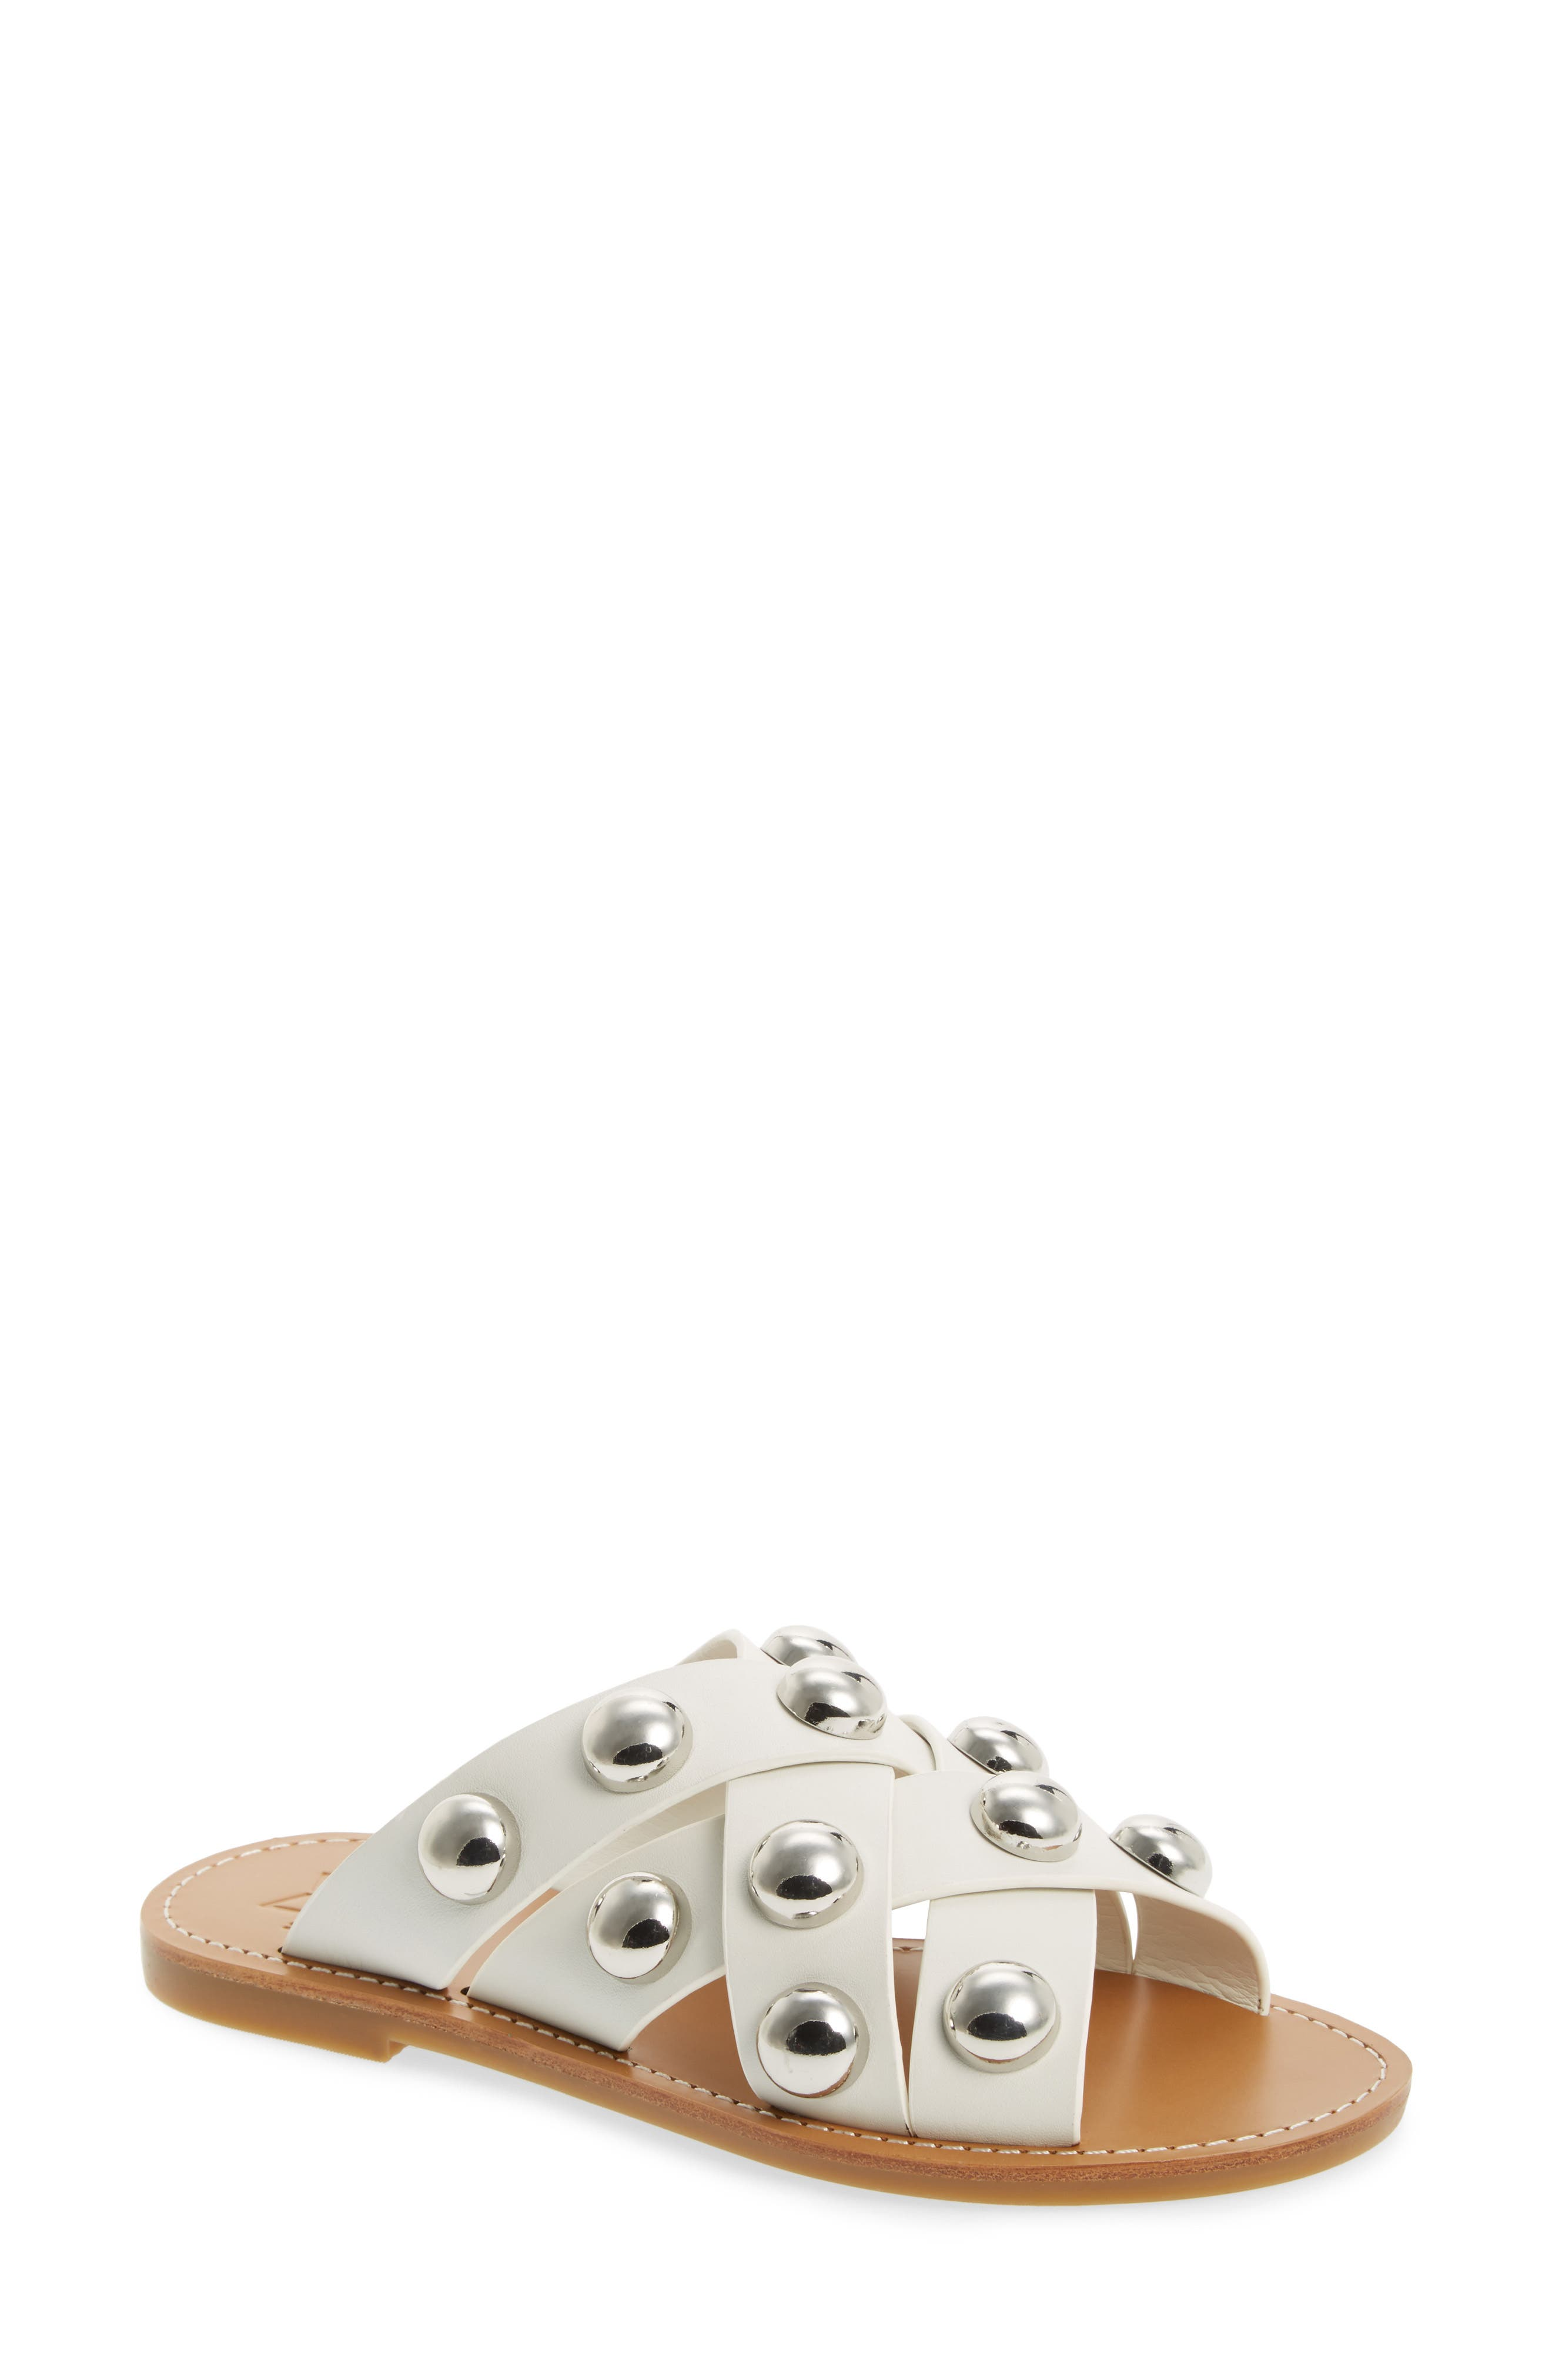 Sneakers for Women On Sale, Ivory, Canvas, 2017, 4.5 Hogan